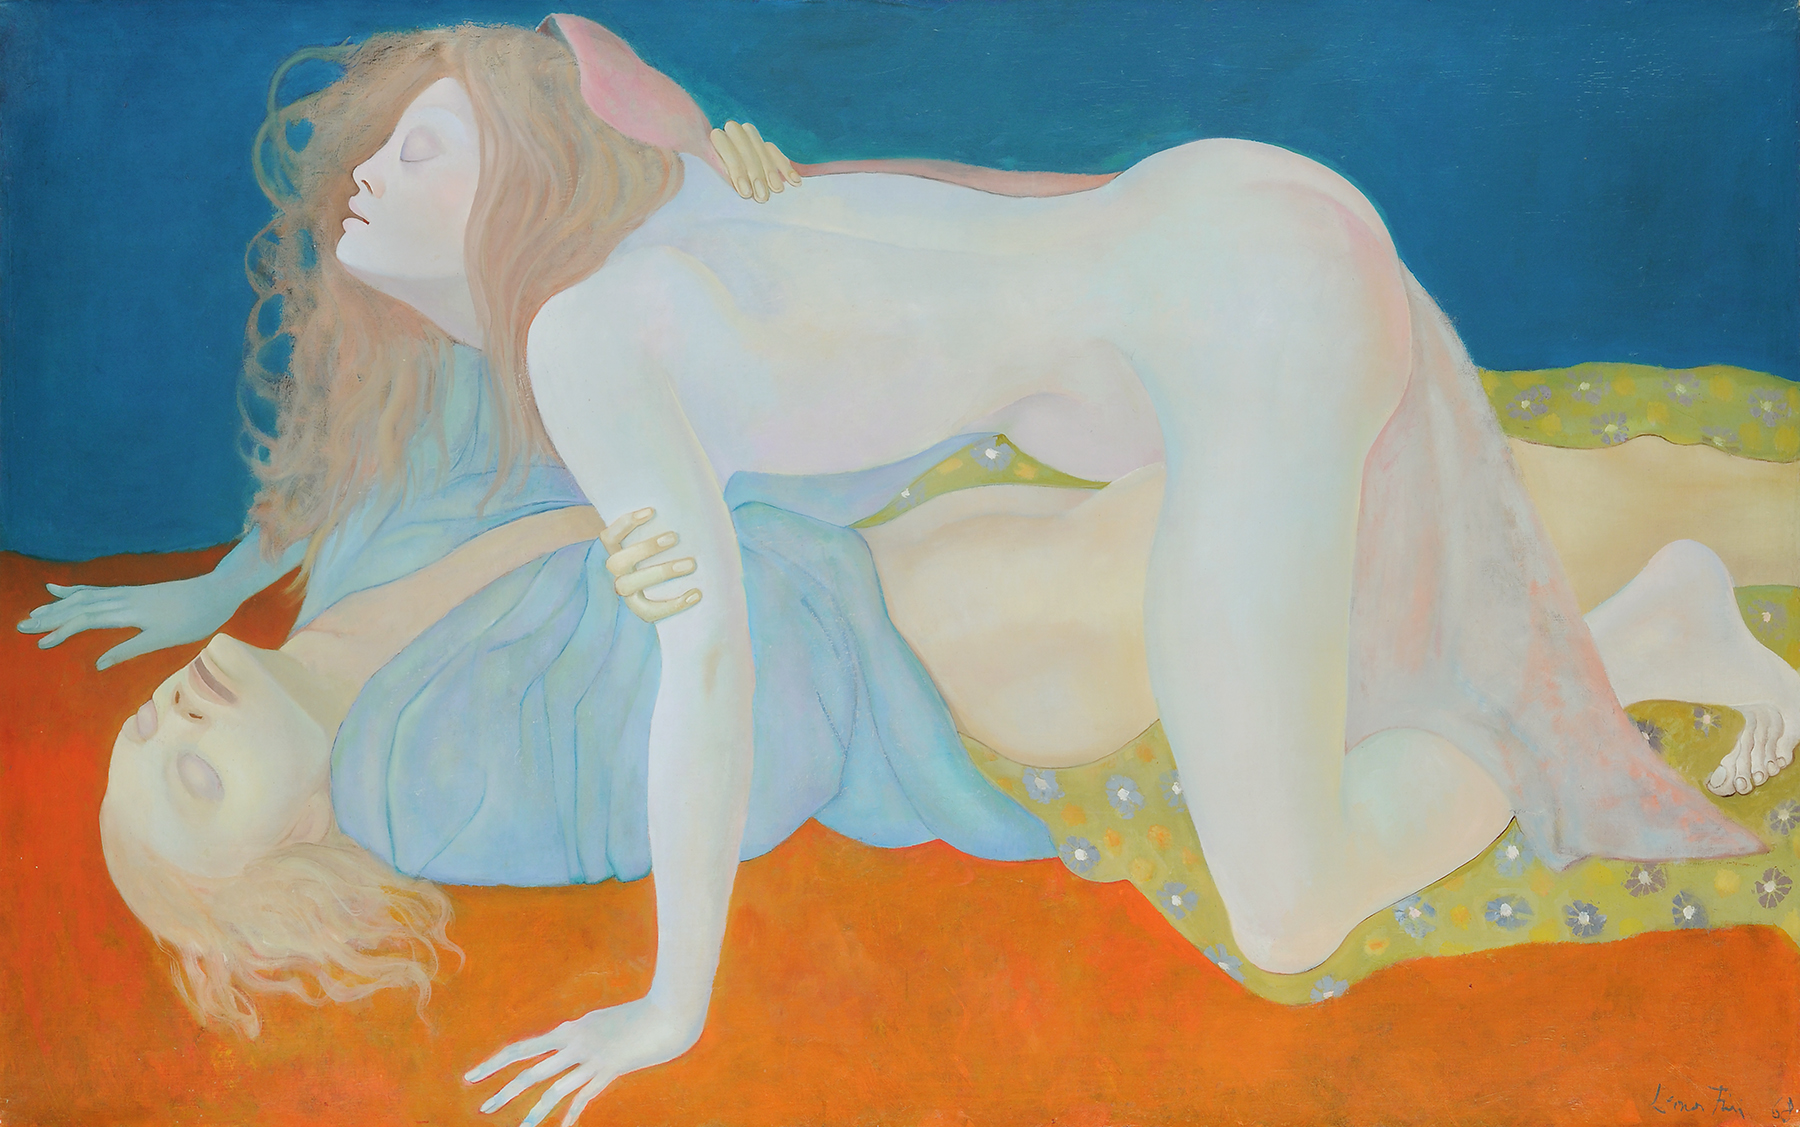 The Blind Ones (Les Aveugles), 1968, Oil on canvas, Courtesy of Weinstein Gallery, San Francisco